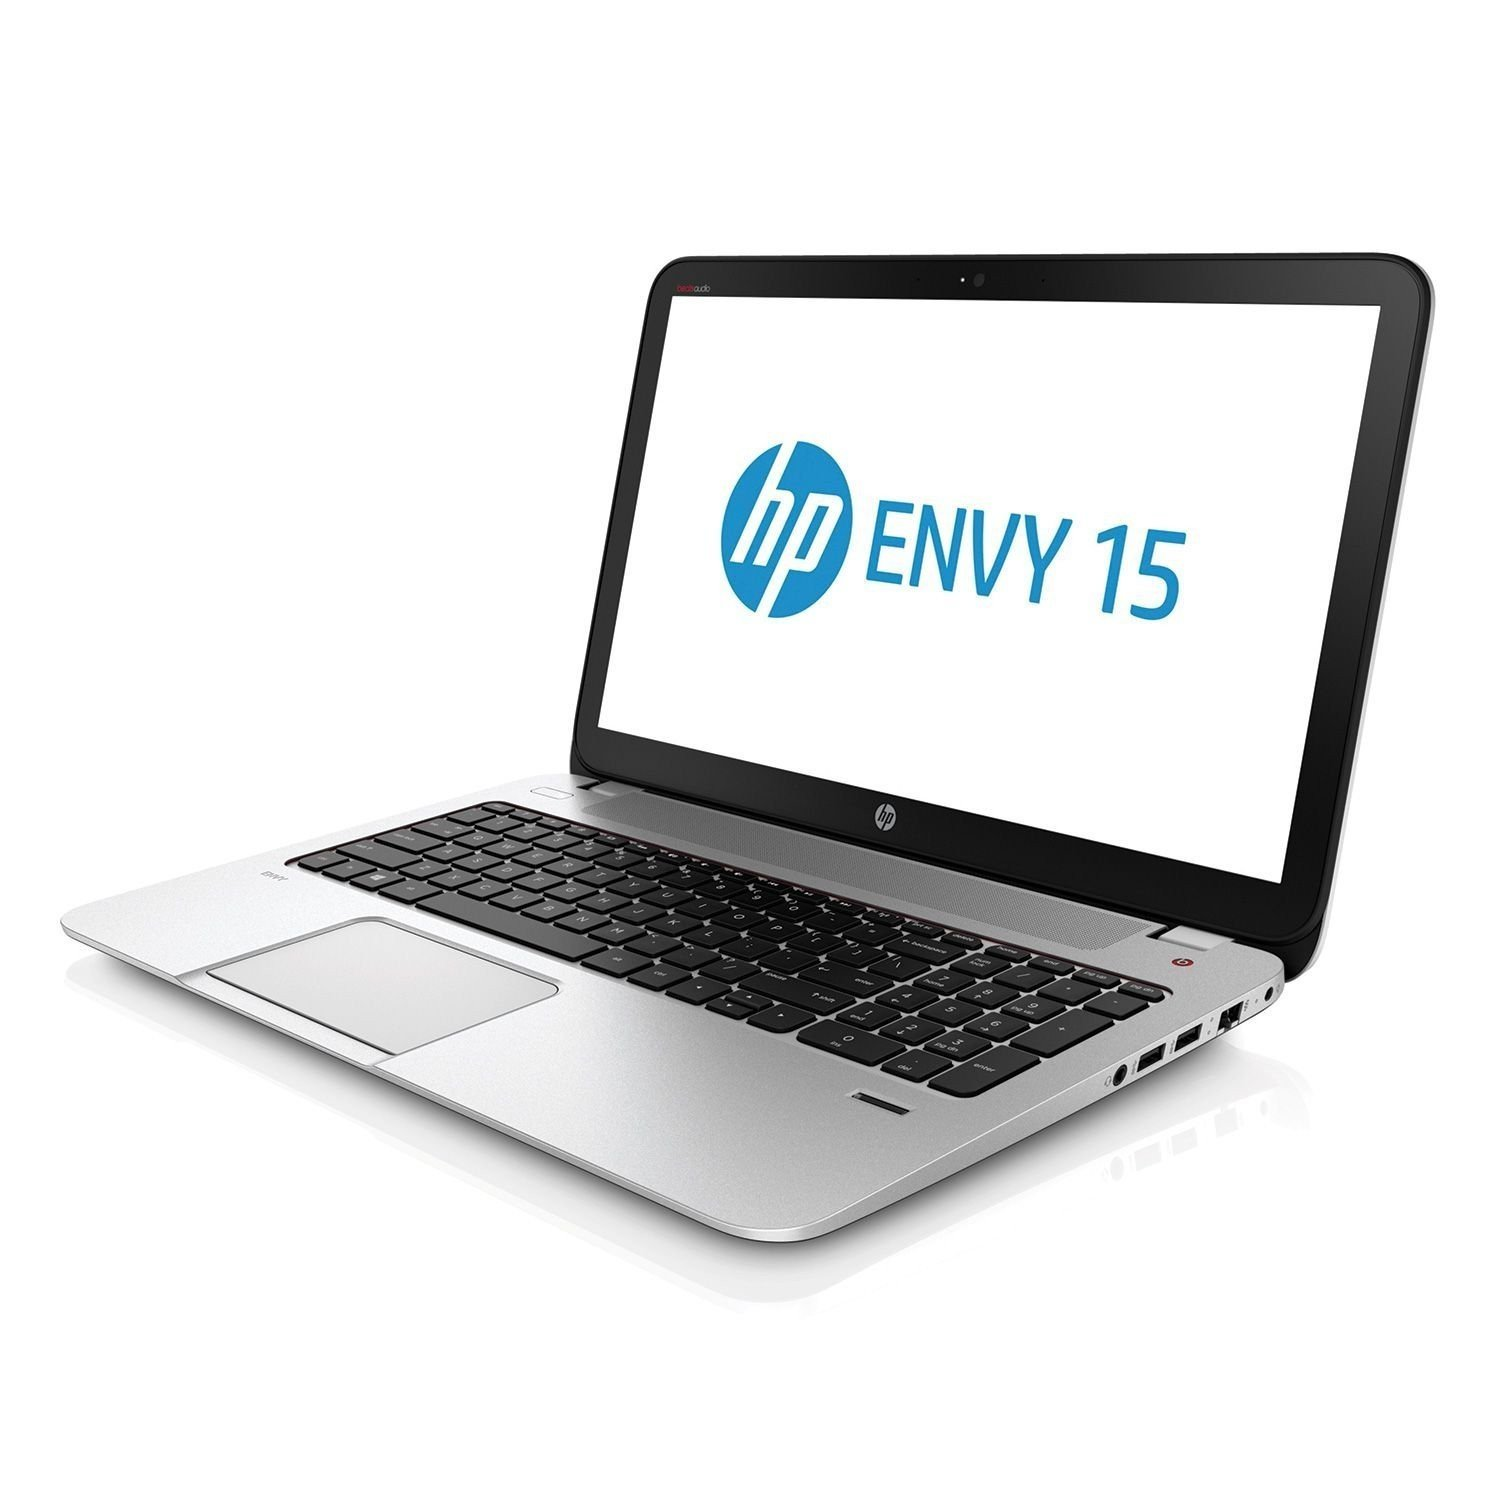 HP ENVY 14-1154CA BEATS EDITION NOTEBOOK INTEL WLAN DRIVER FREE